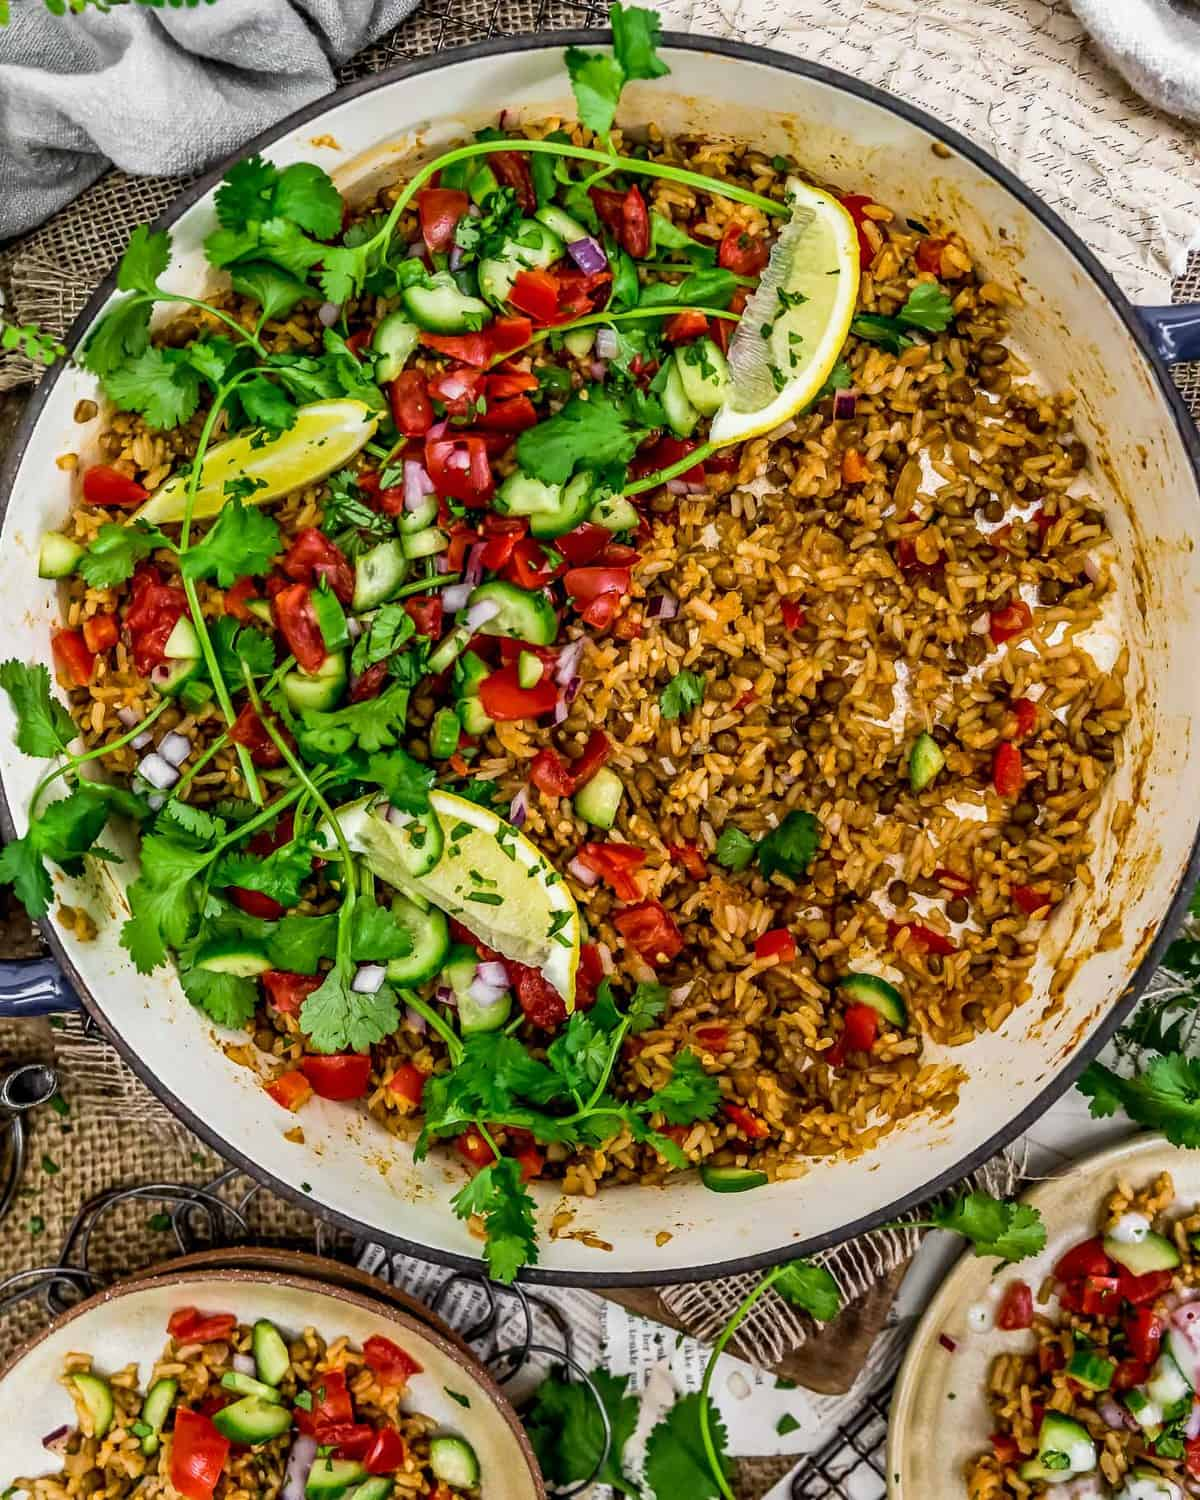 Tablescape of Middle Eastern Rice and Lentils